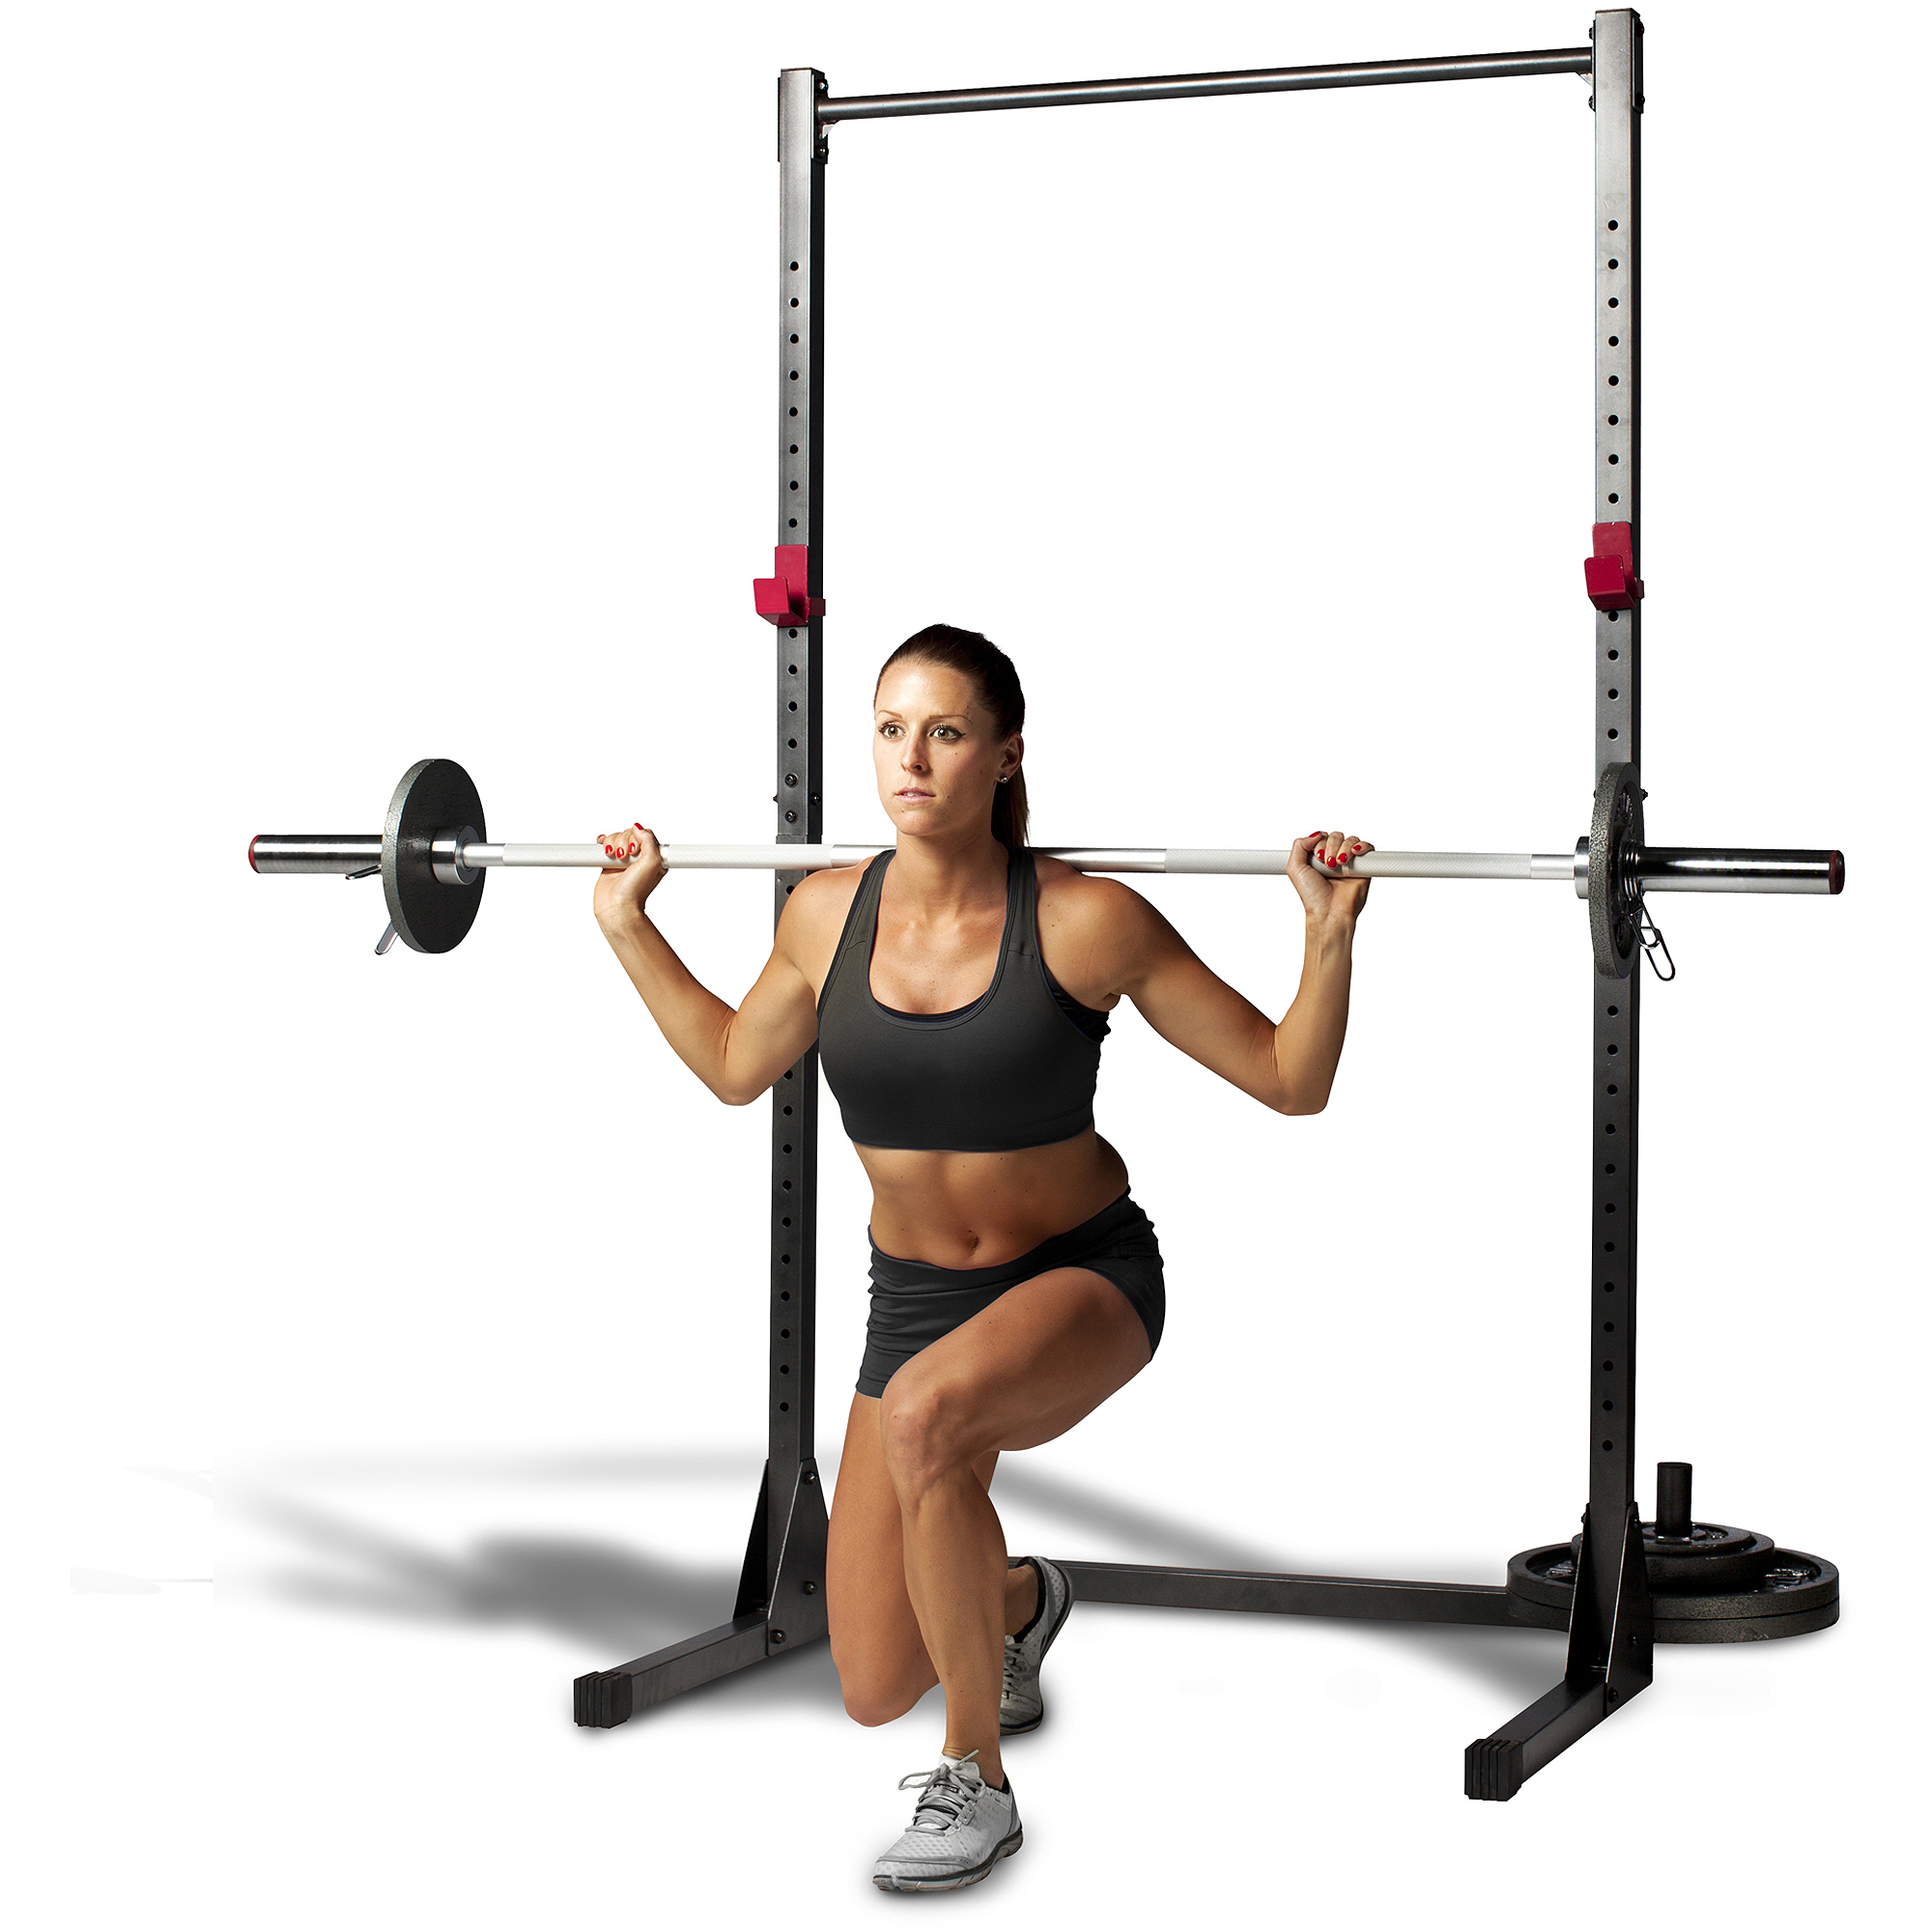 better for smovey resistance vibroswing rings exercise buy health wellness pin trainers and